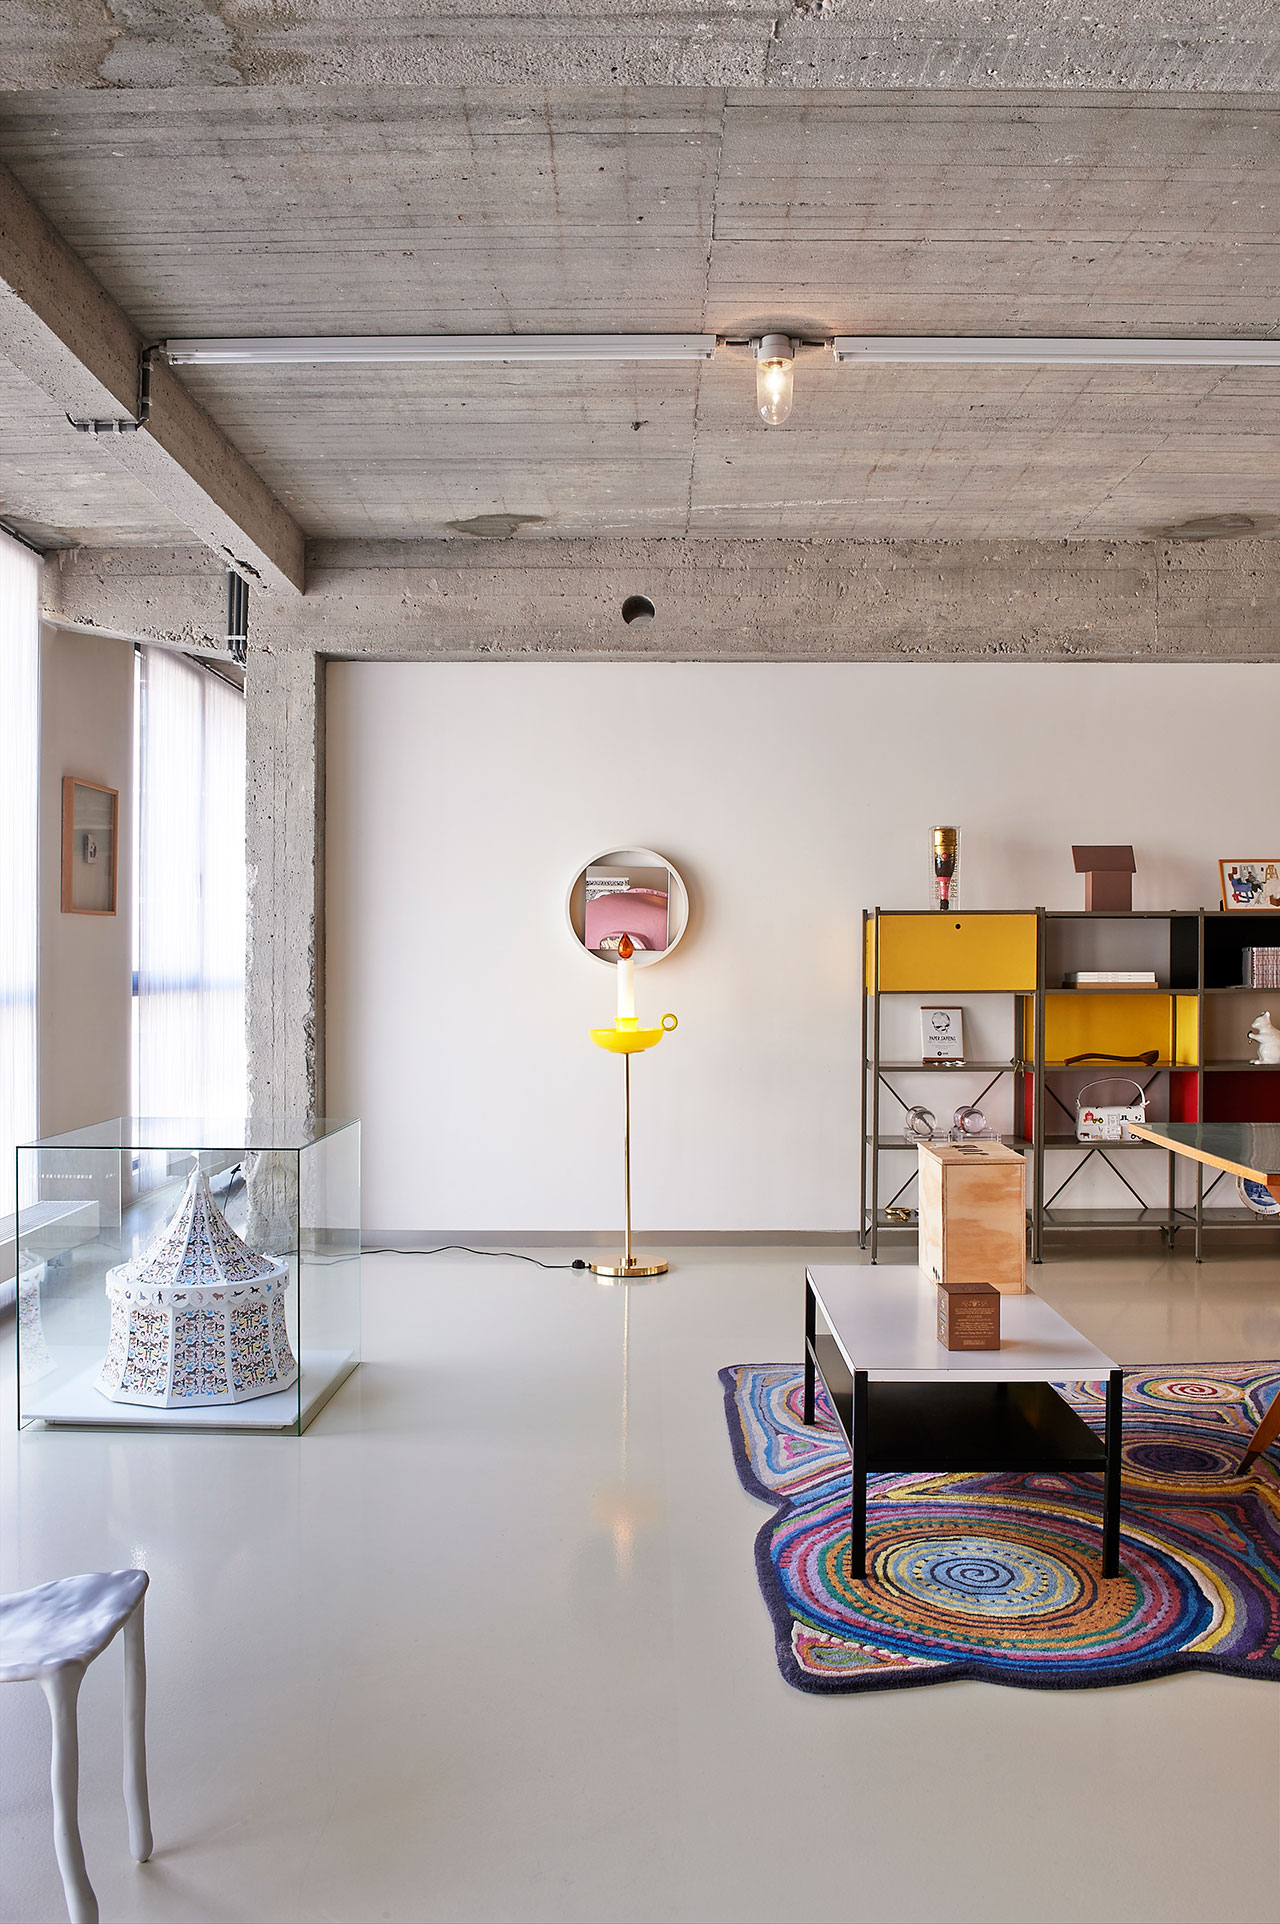 Office.Circus, Studio Job.Sconce, Studio Job for Venini.Mirror, Benno Premsela.Sushi, Campana Brothers for Nodus.Children's Clay Chair, Maarten Baas.Shelves, Wim Rietveld and André Cordemeyer for Gispen.Photo by Dennis Brandsma.